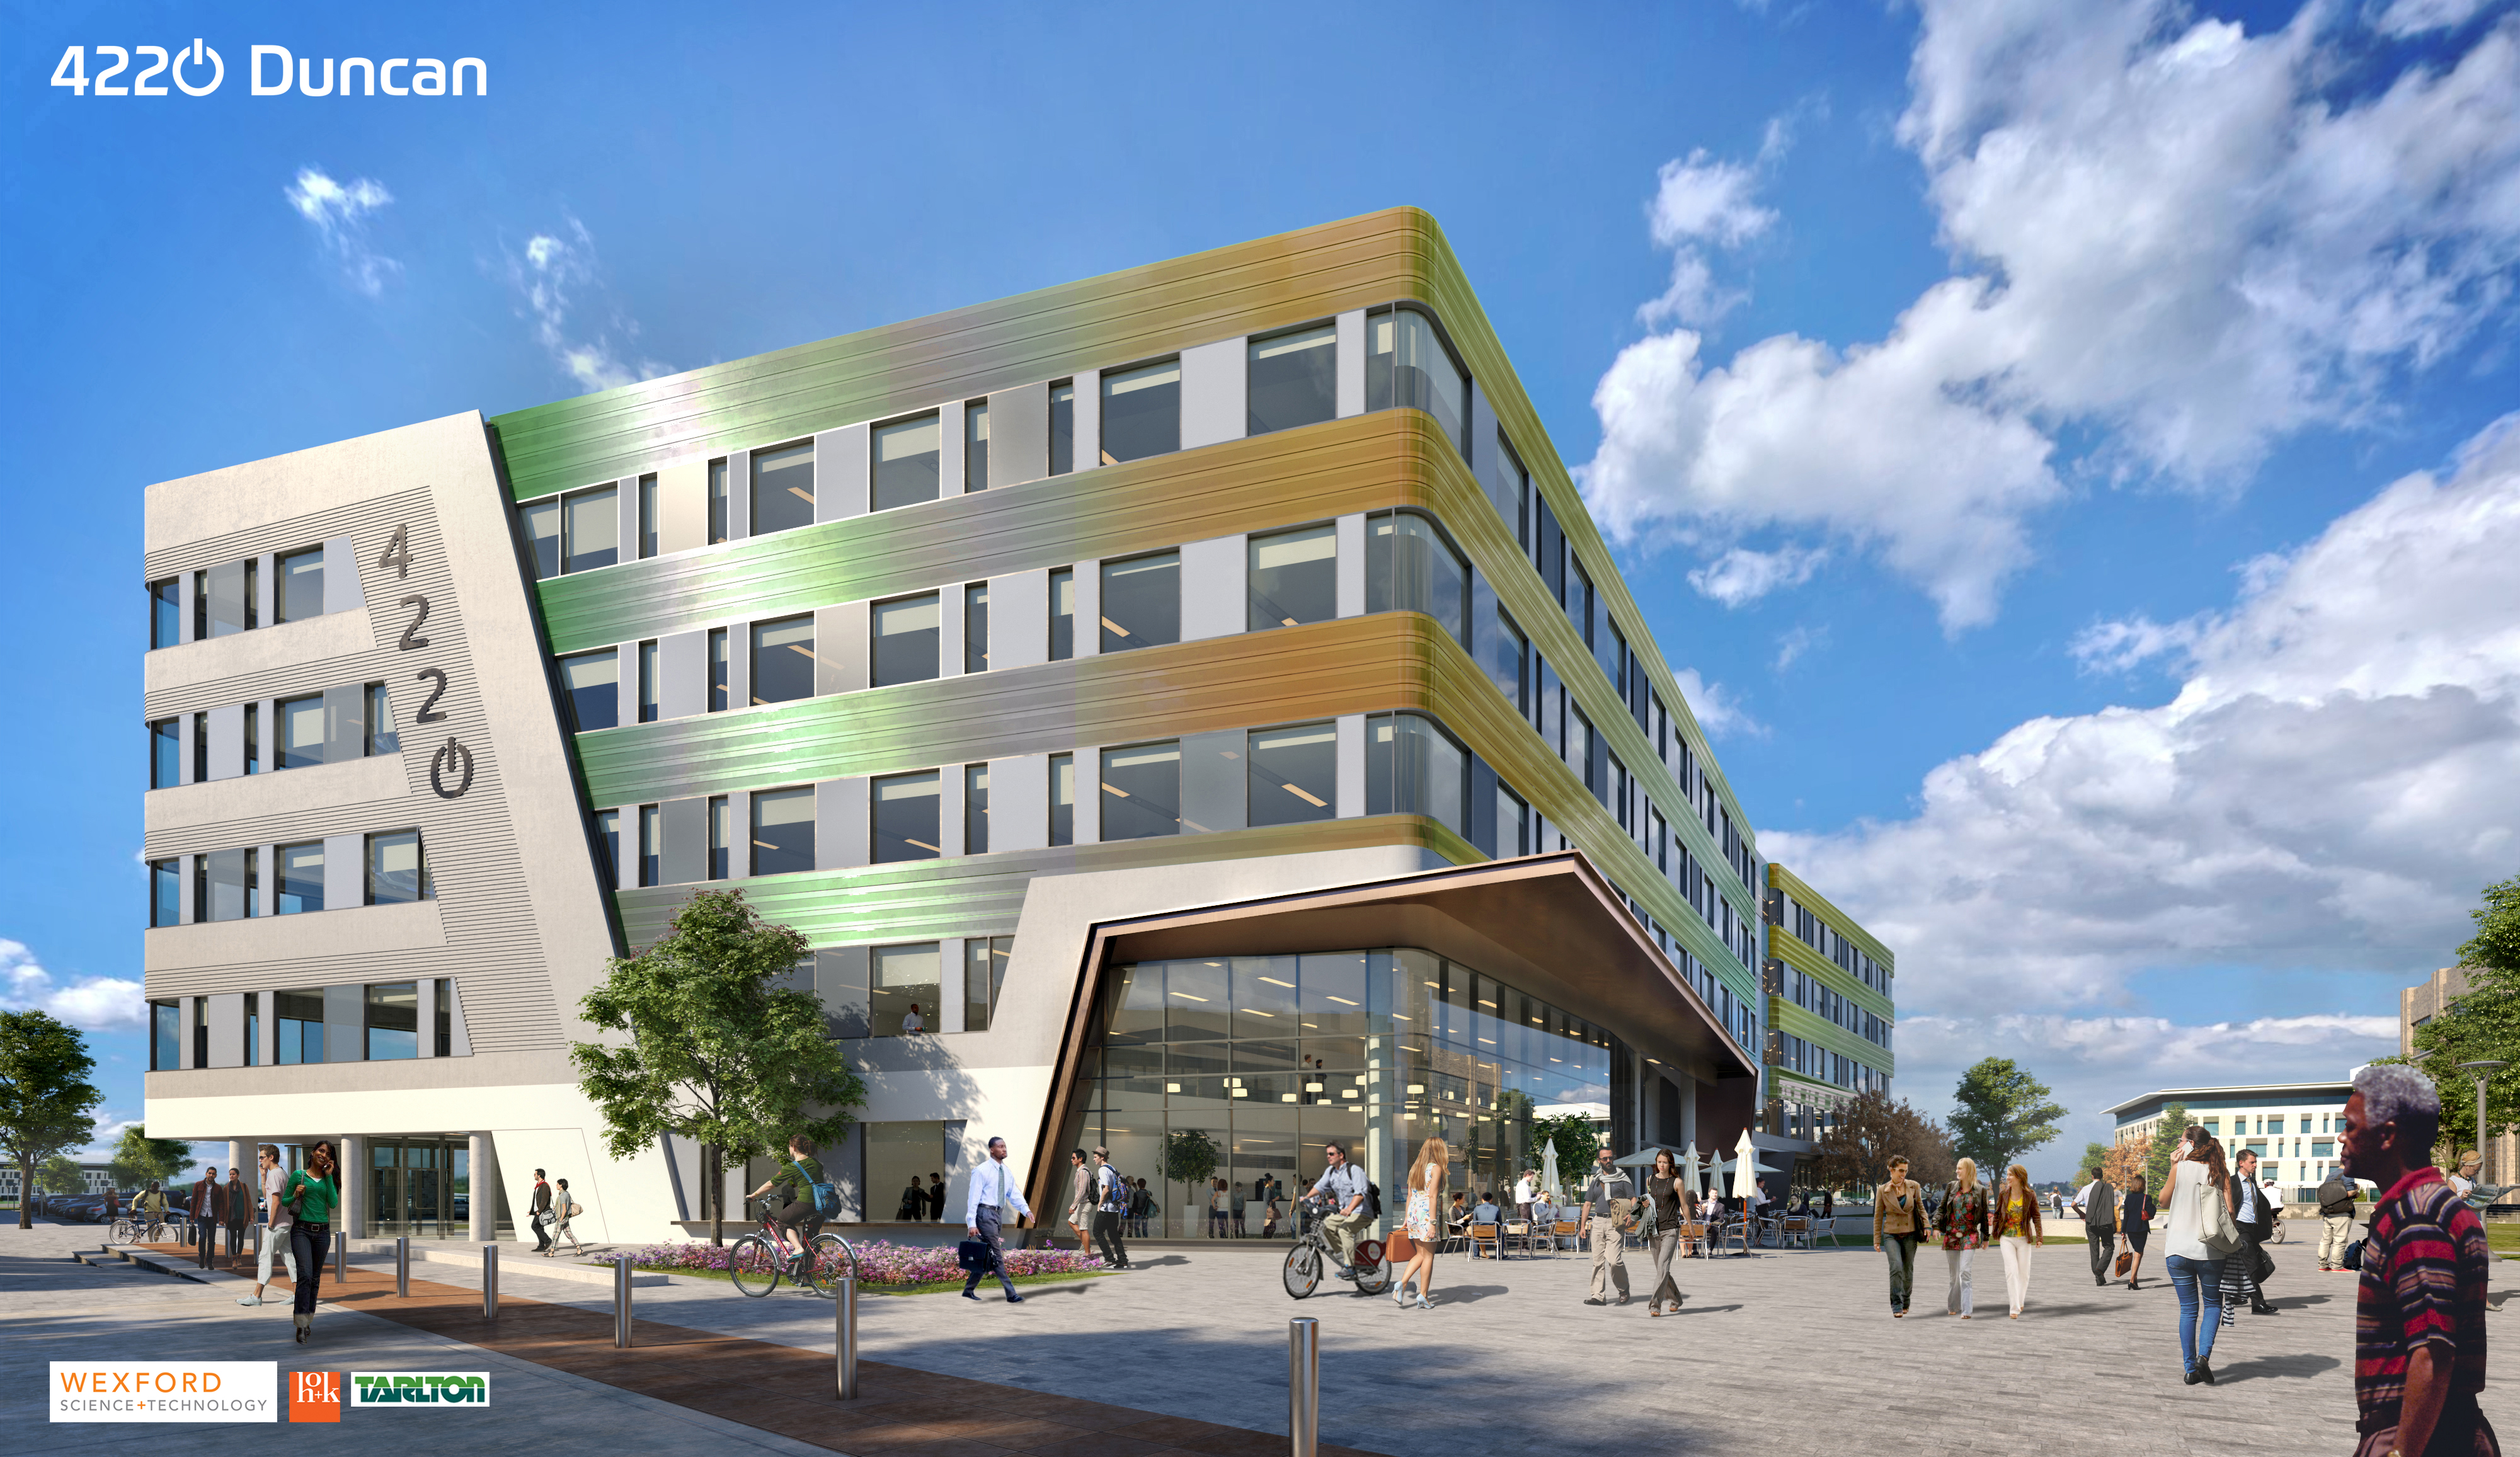 microsoft makes it official becomes new headline tenant at cortex the residential component consisting of 200 apartments and a parking garage has been delayed but the aloft hotel and venture cafe innovation hall are